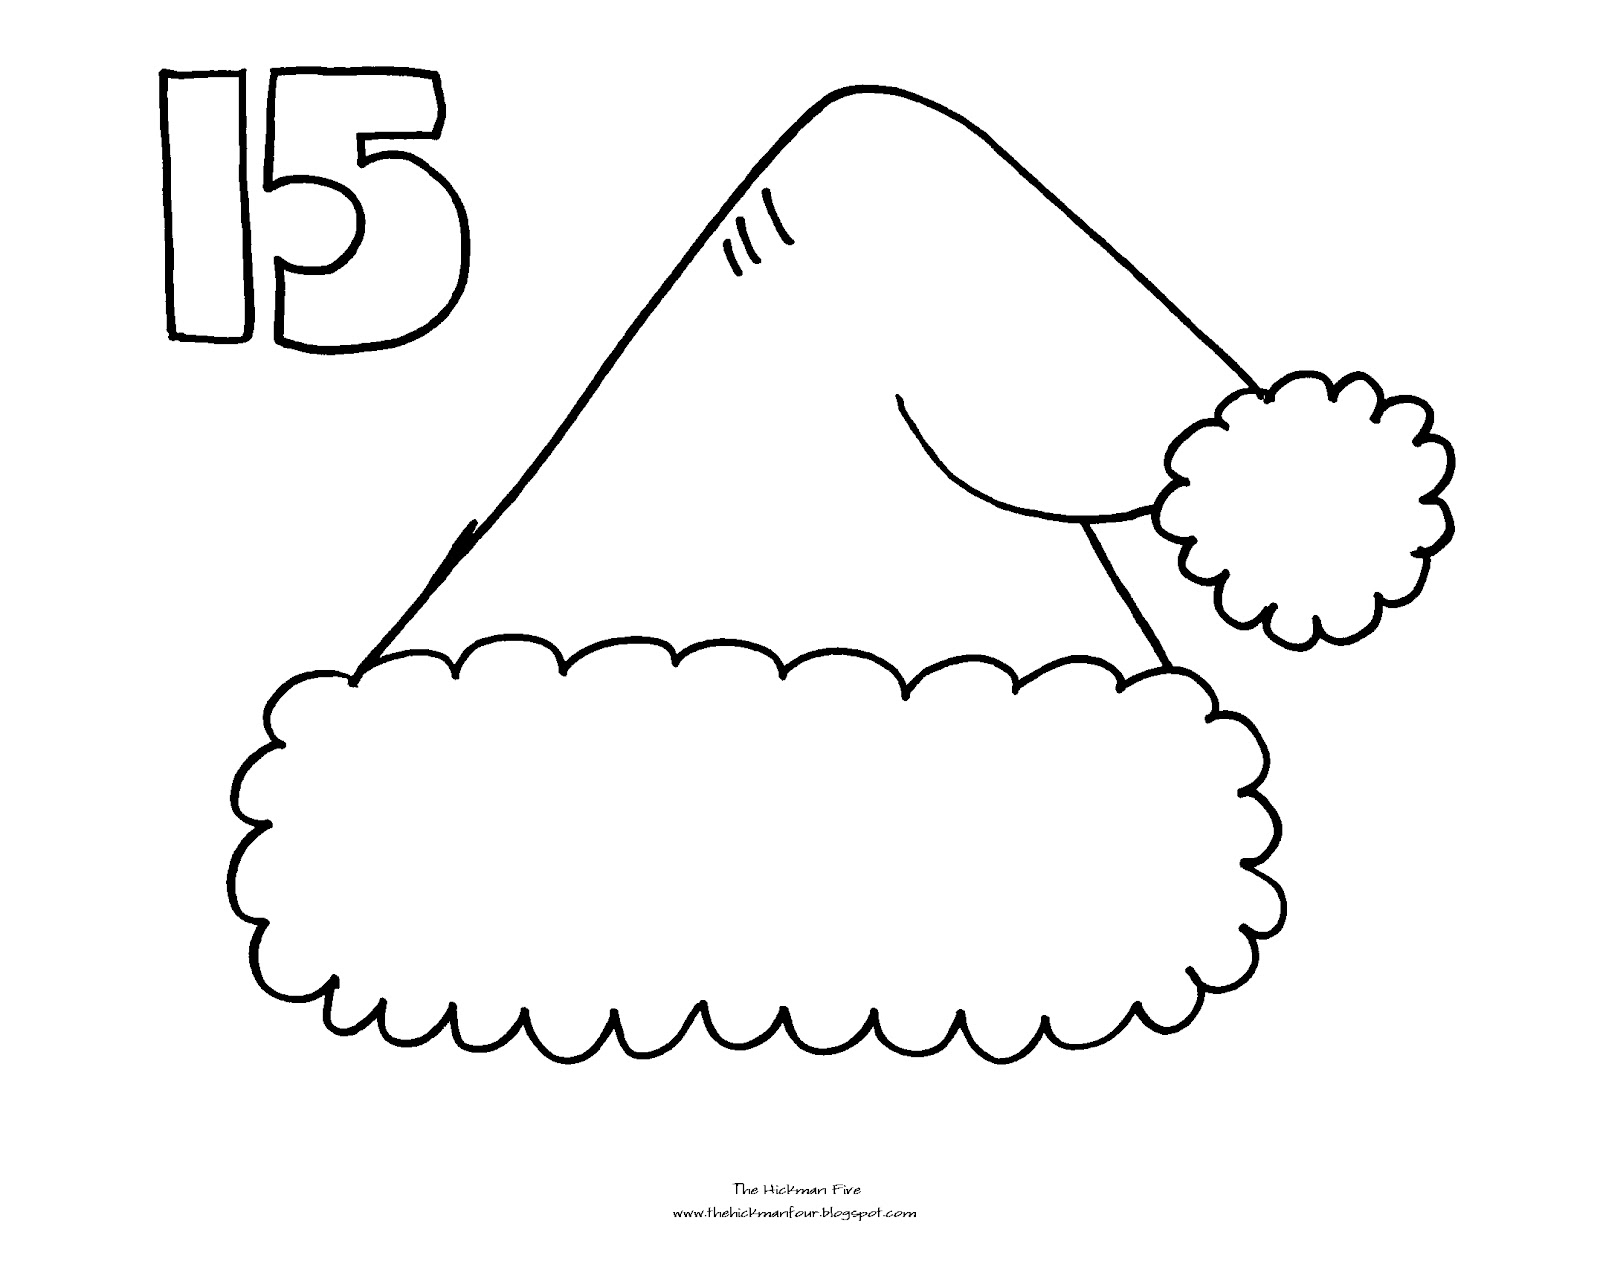 Free Christmas Tree Calendar Countdown Calendar Template Tree Countdown Coloring Page